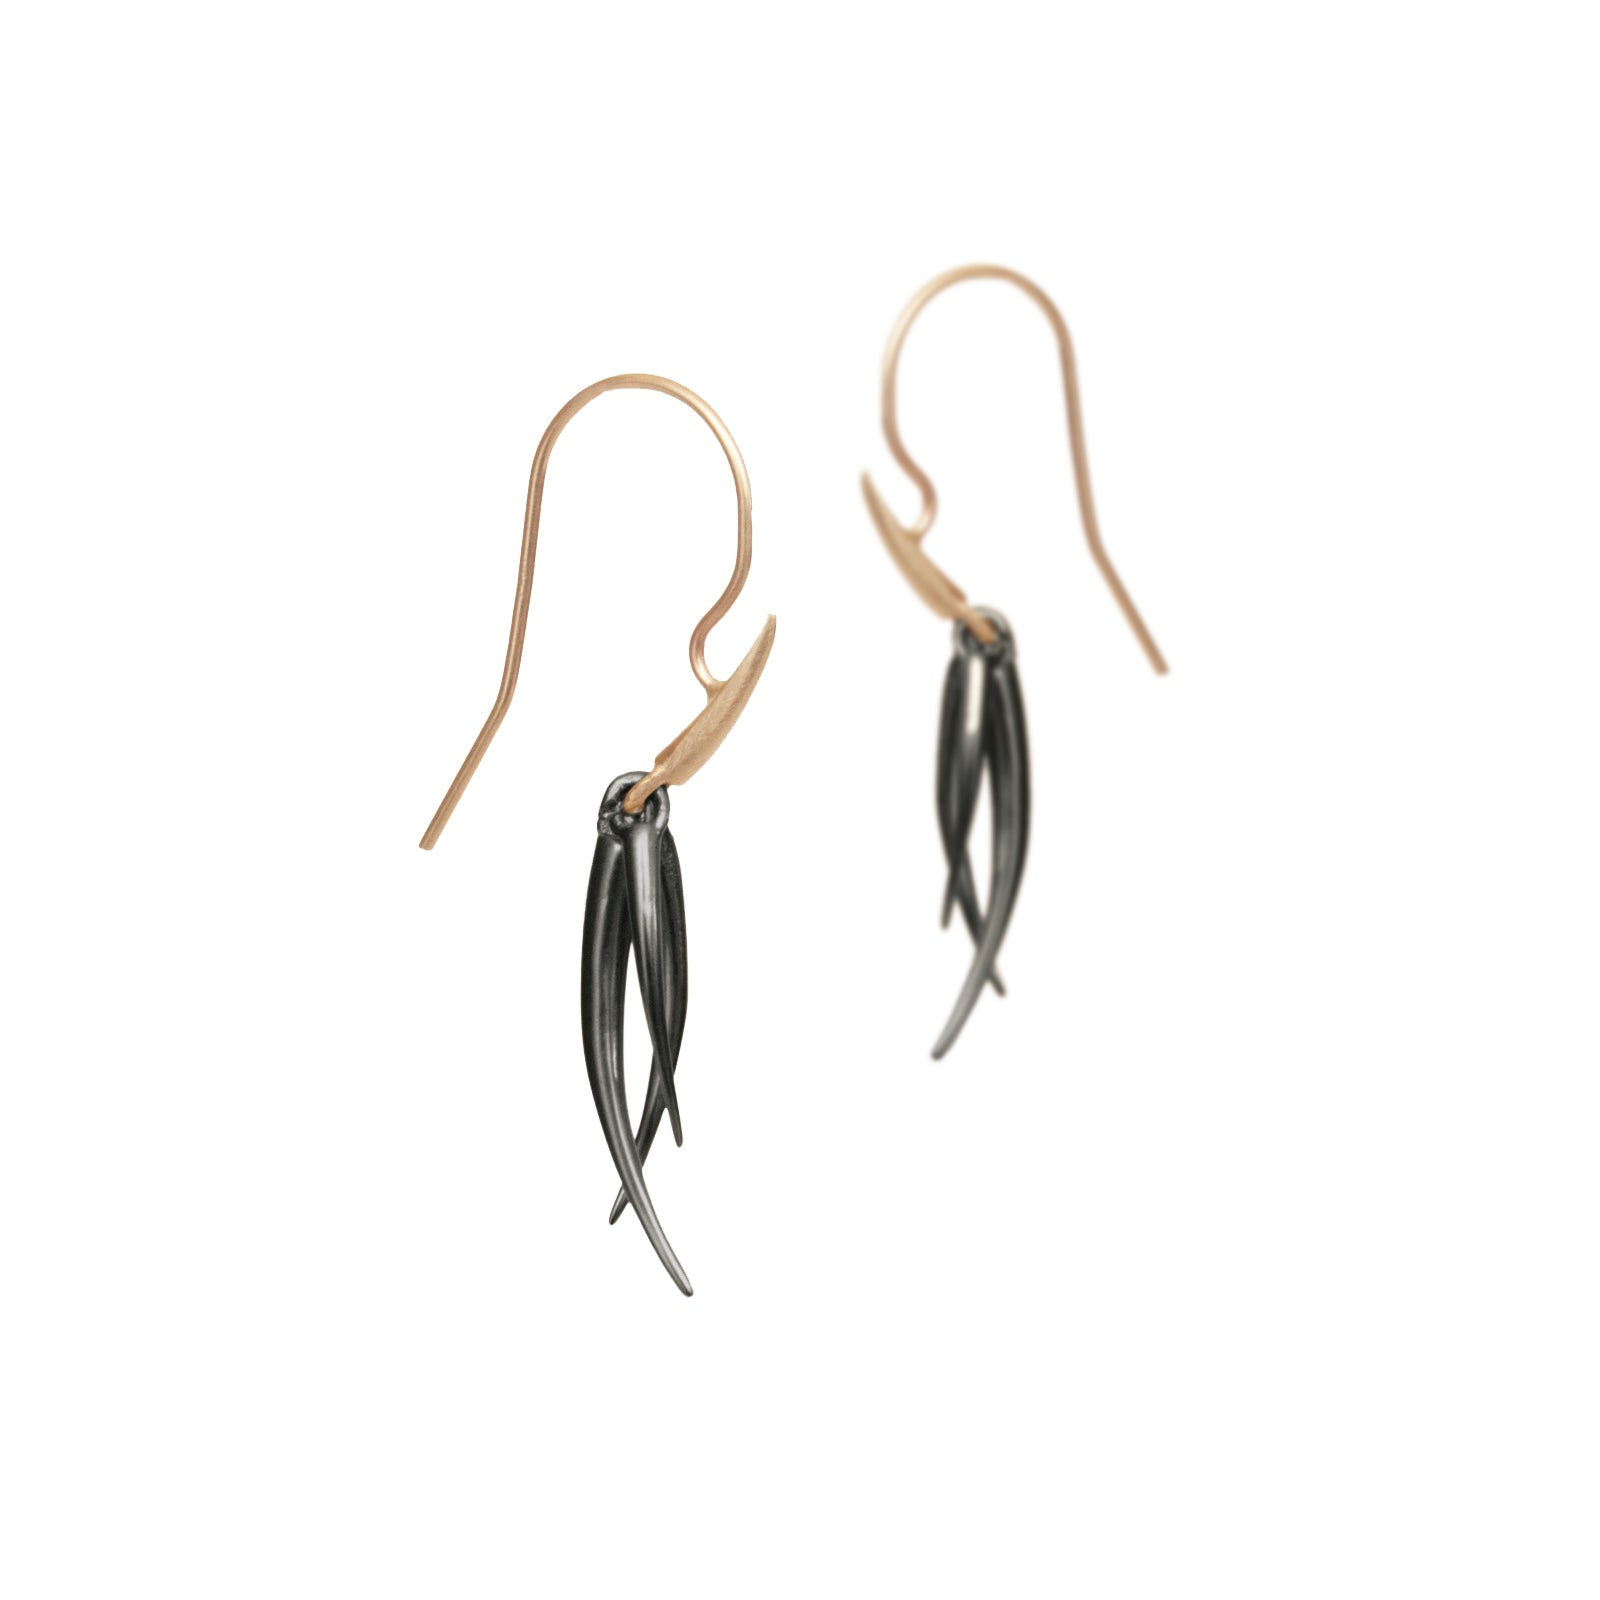 small / sterling silver plated in black rhodium/14k yellow gold ankole tassle earrings